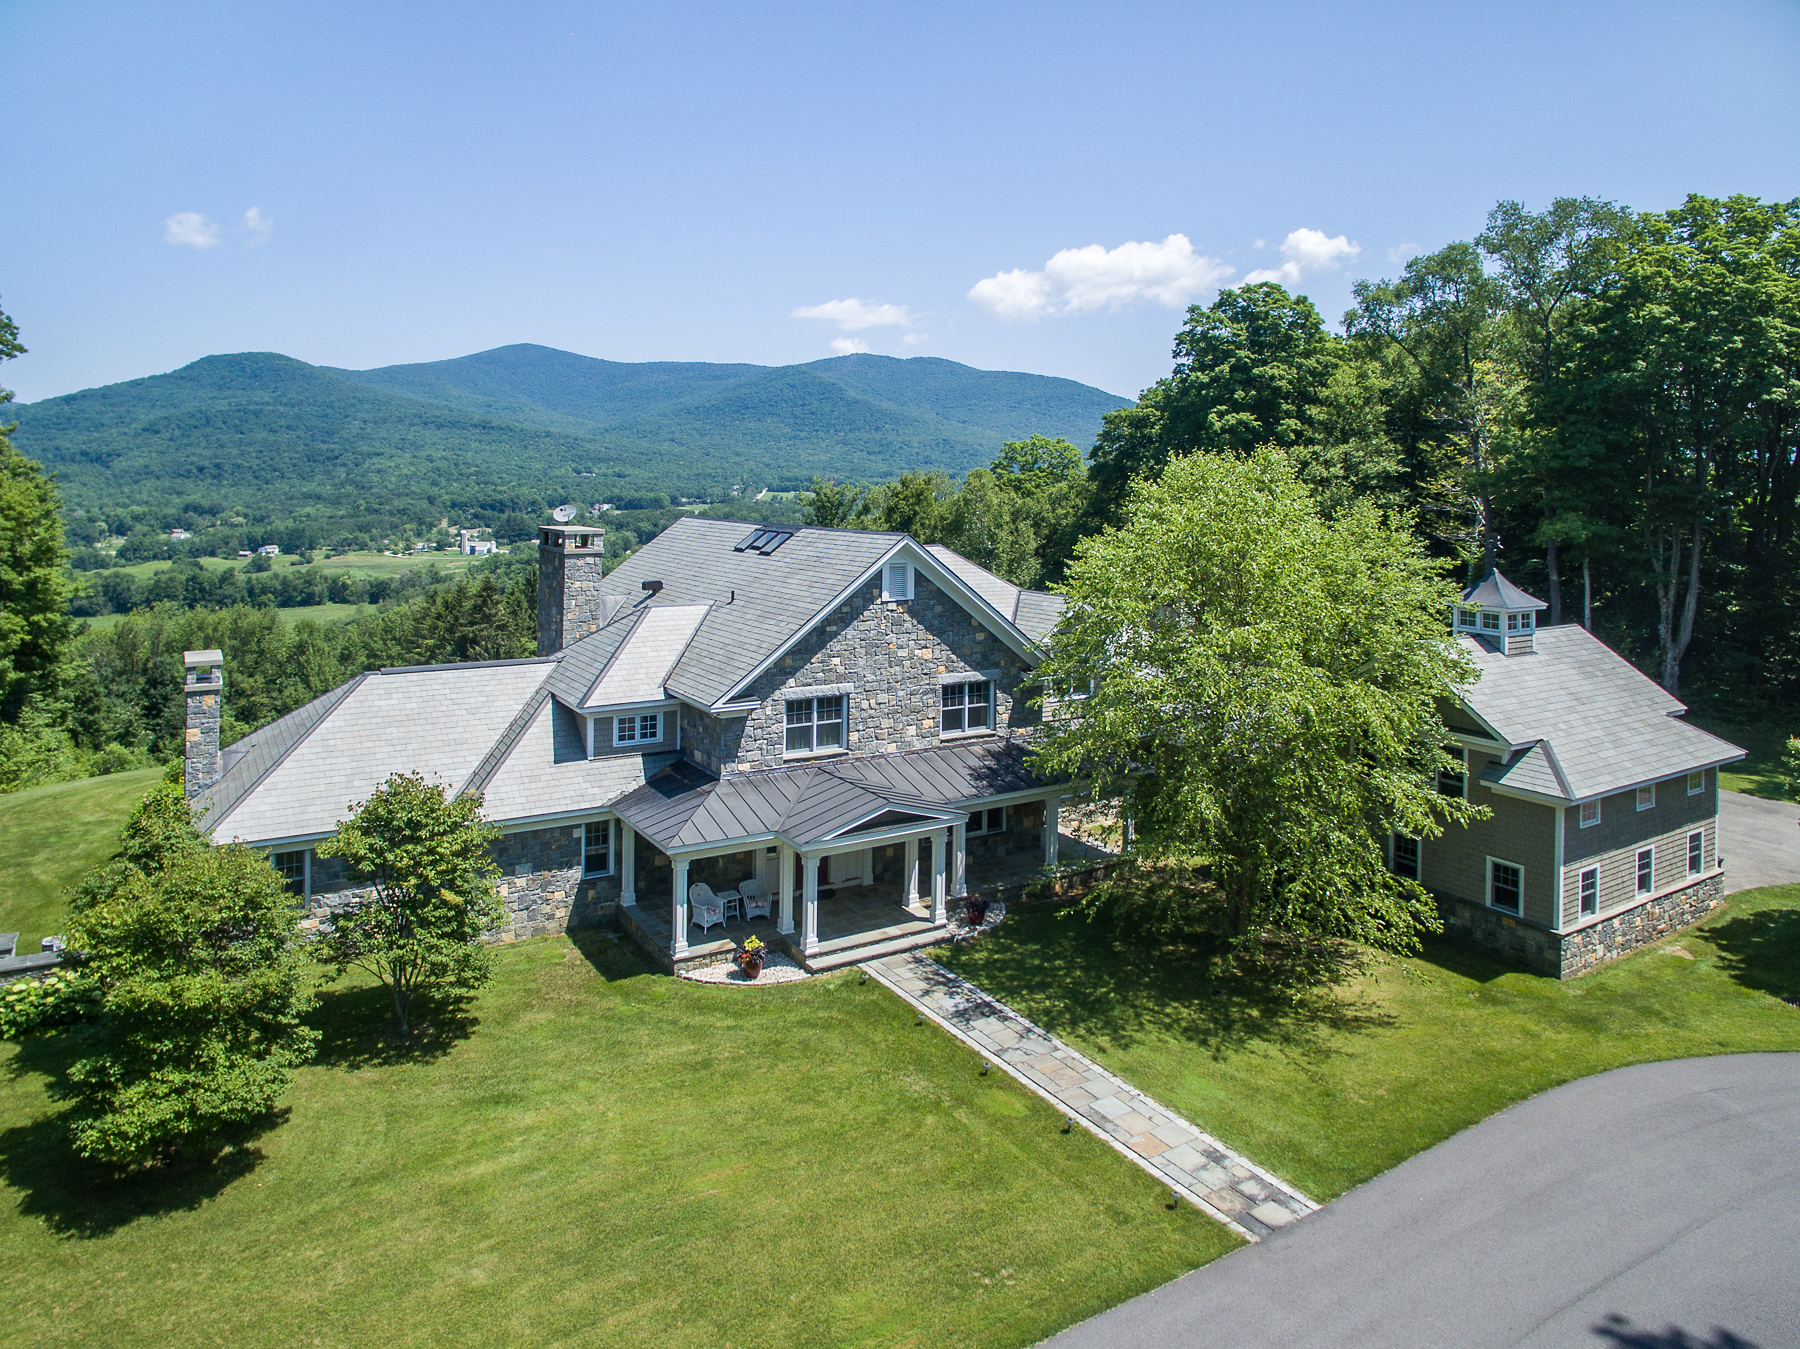 Single Family Home for Sale at 300 Nims Road, Dorset 300 Nims Rd Dorset, Vermont 05251 United States